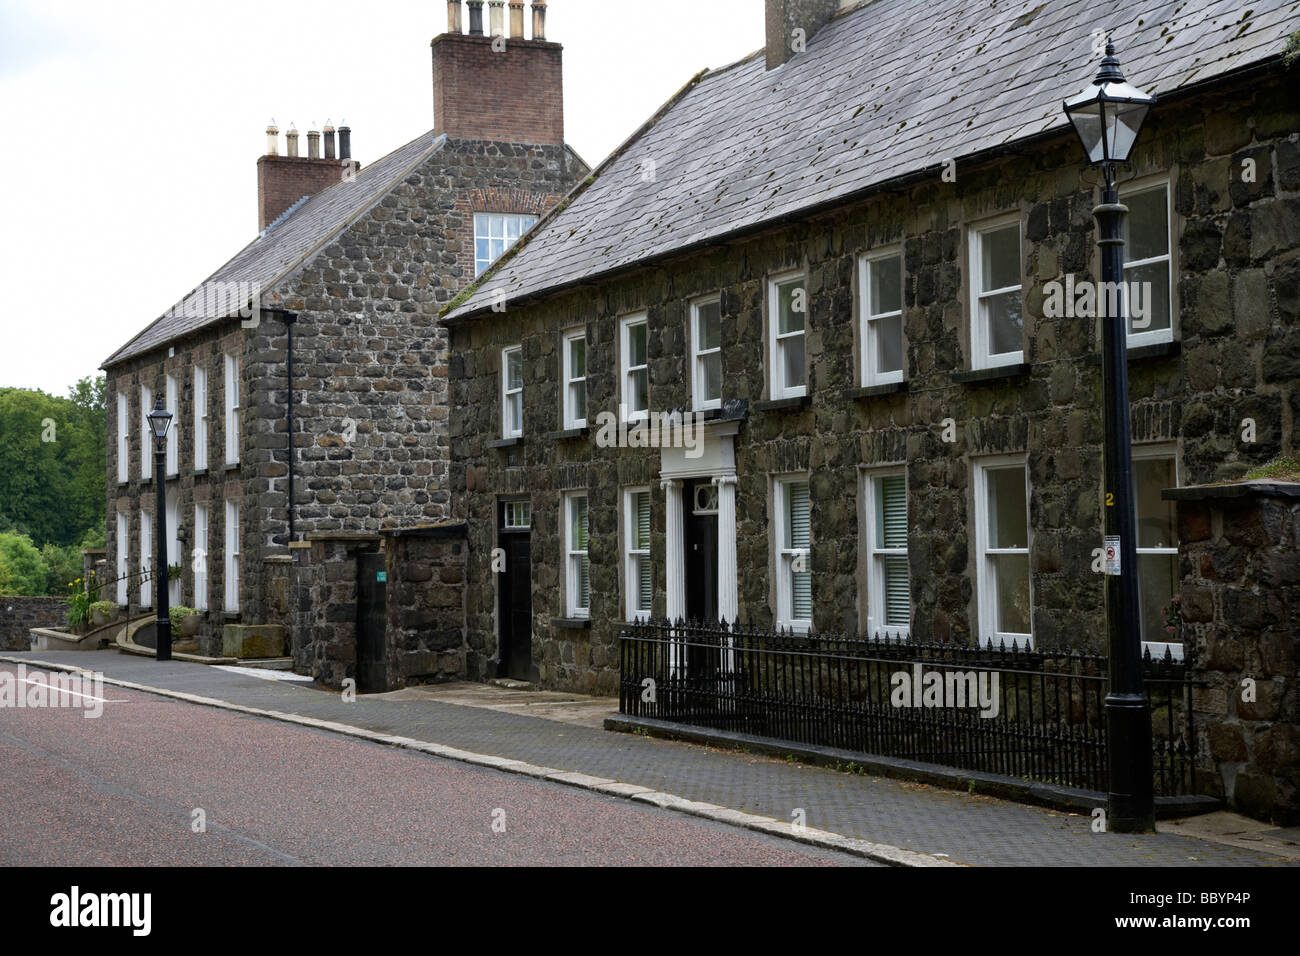 montgomery street in 18th century gracehill village a moravian settlement in county antrim northern ireland uk - Stock Image